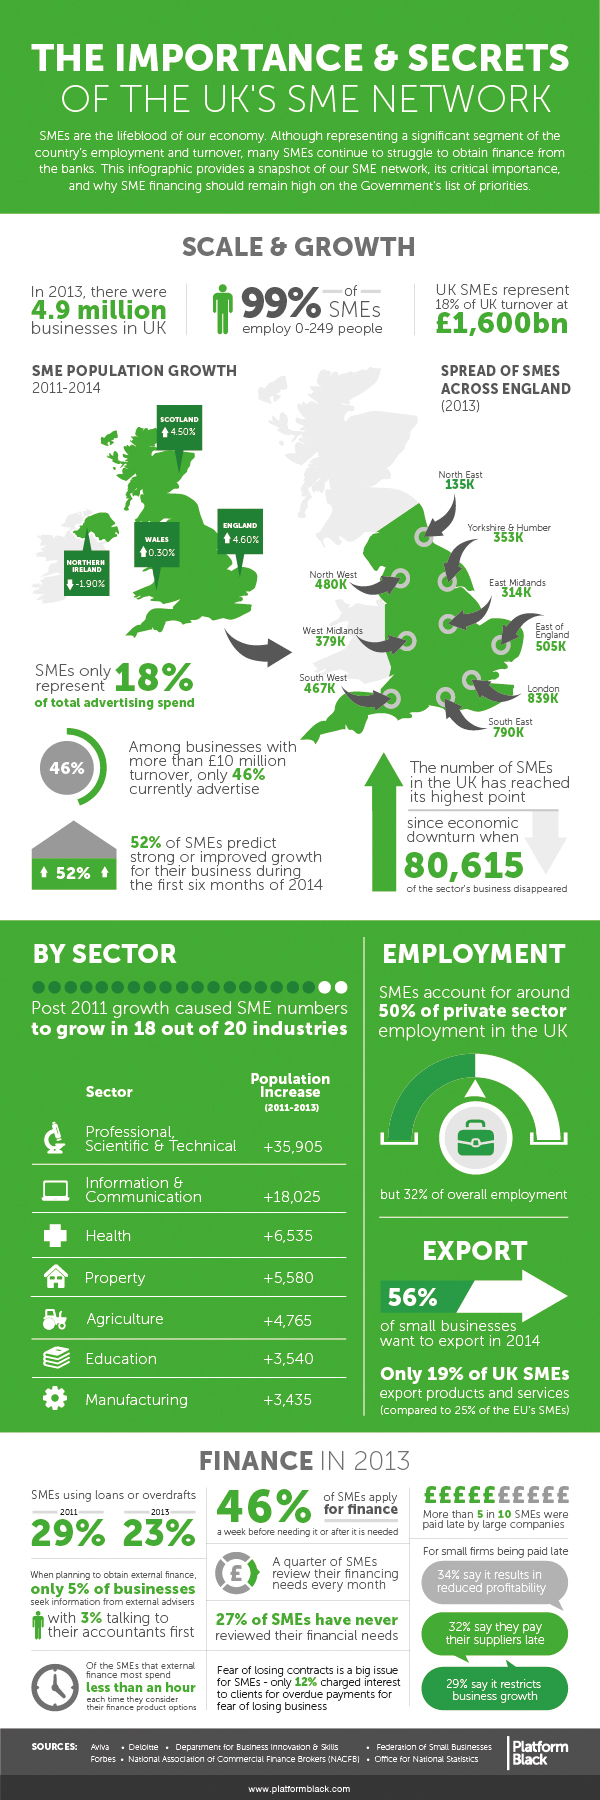 The Importance of the UK's SME Network [INFOGRAPHIC]